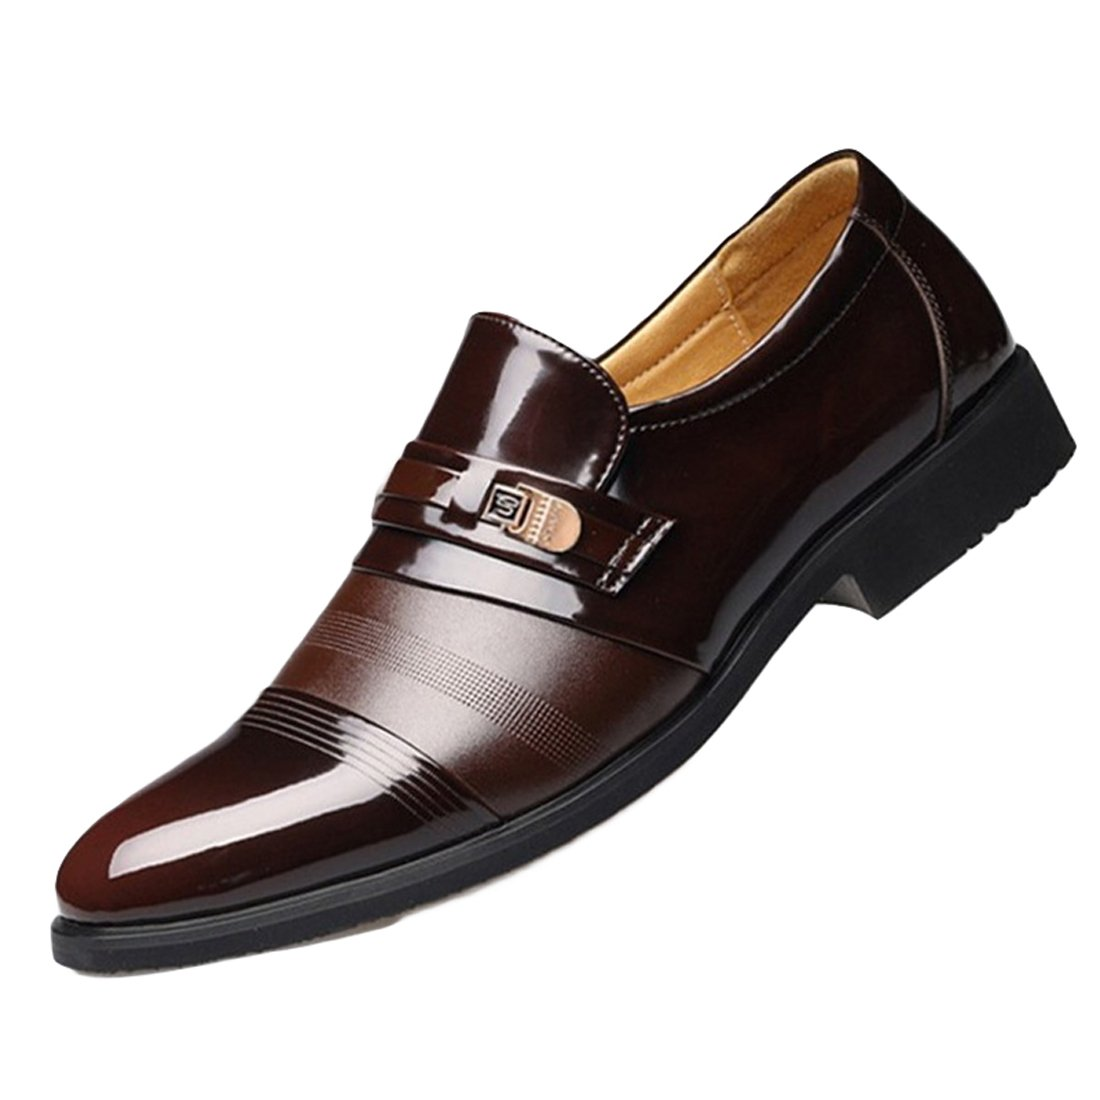 Mens Dress Shoes Oxford Shoes Lace up Loafer Comfortable Classic Modern Formal Business Shoes